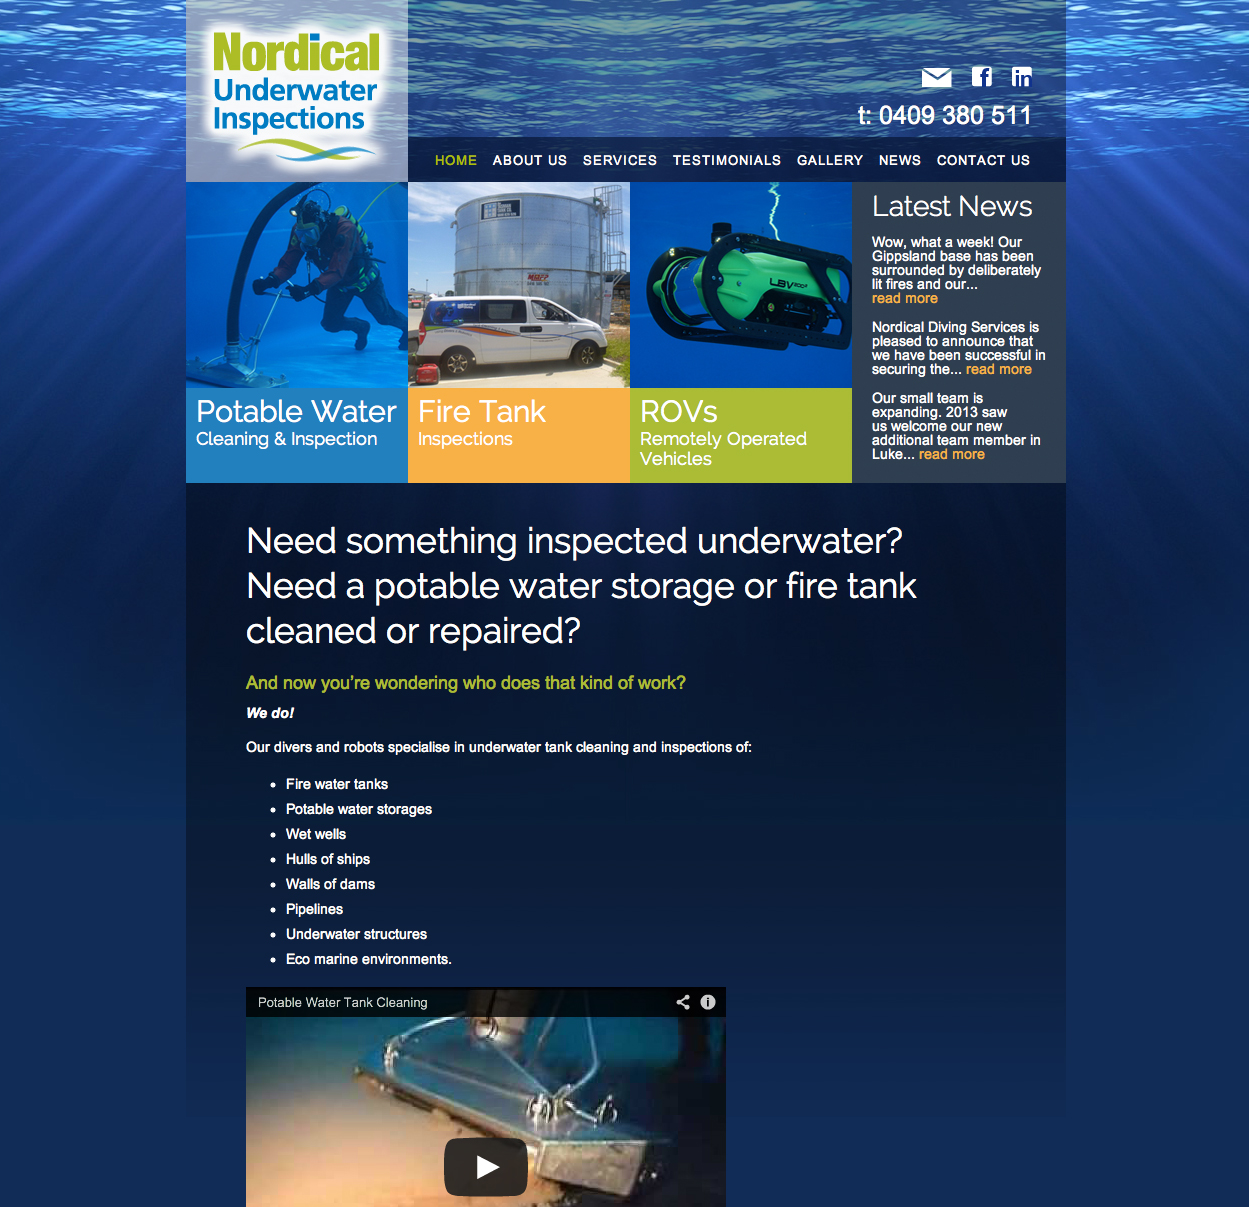 The New Nordical website